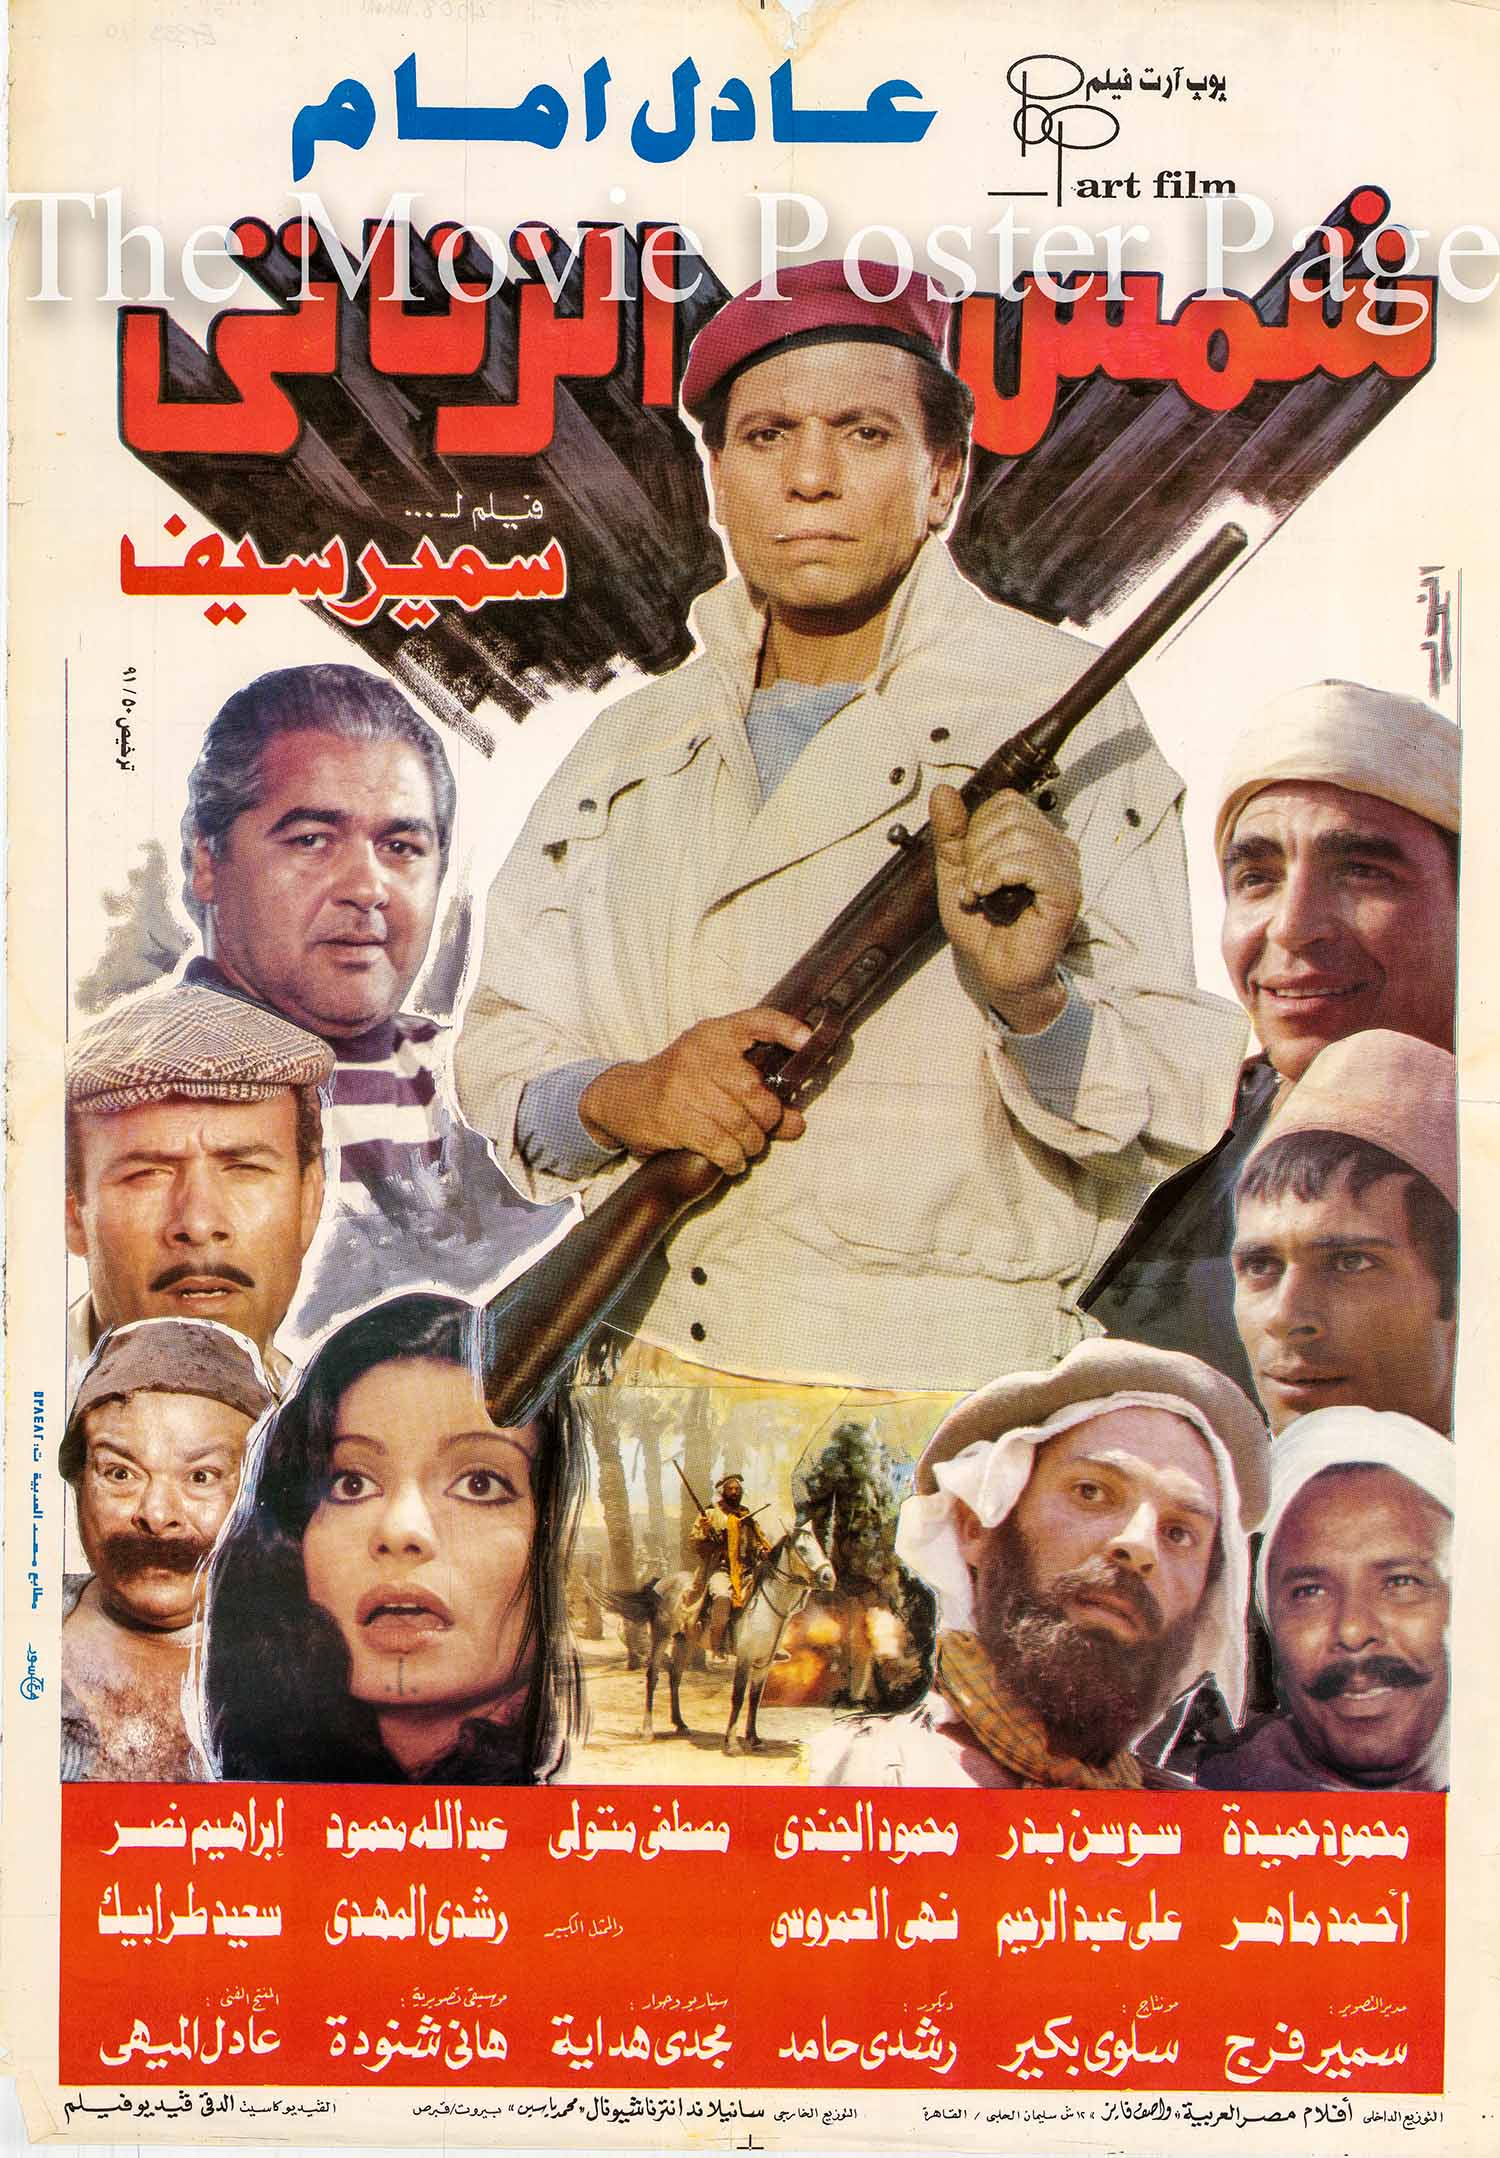 Pictured is an Egyptian promotional poster for the 1991 Samir Seif film Shams al-Zanati starring Adel Imam.